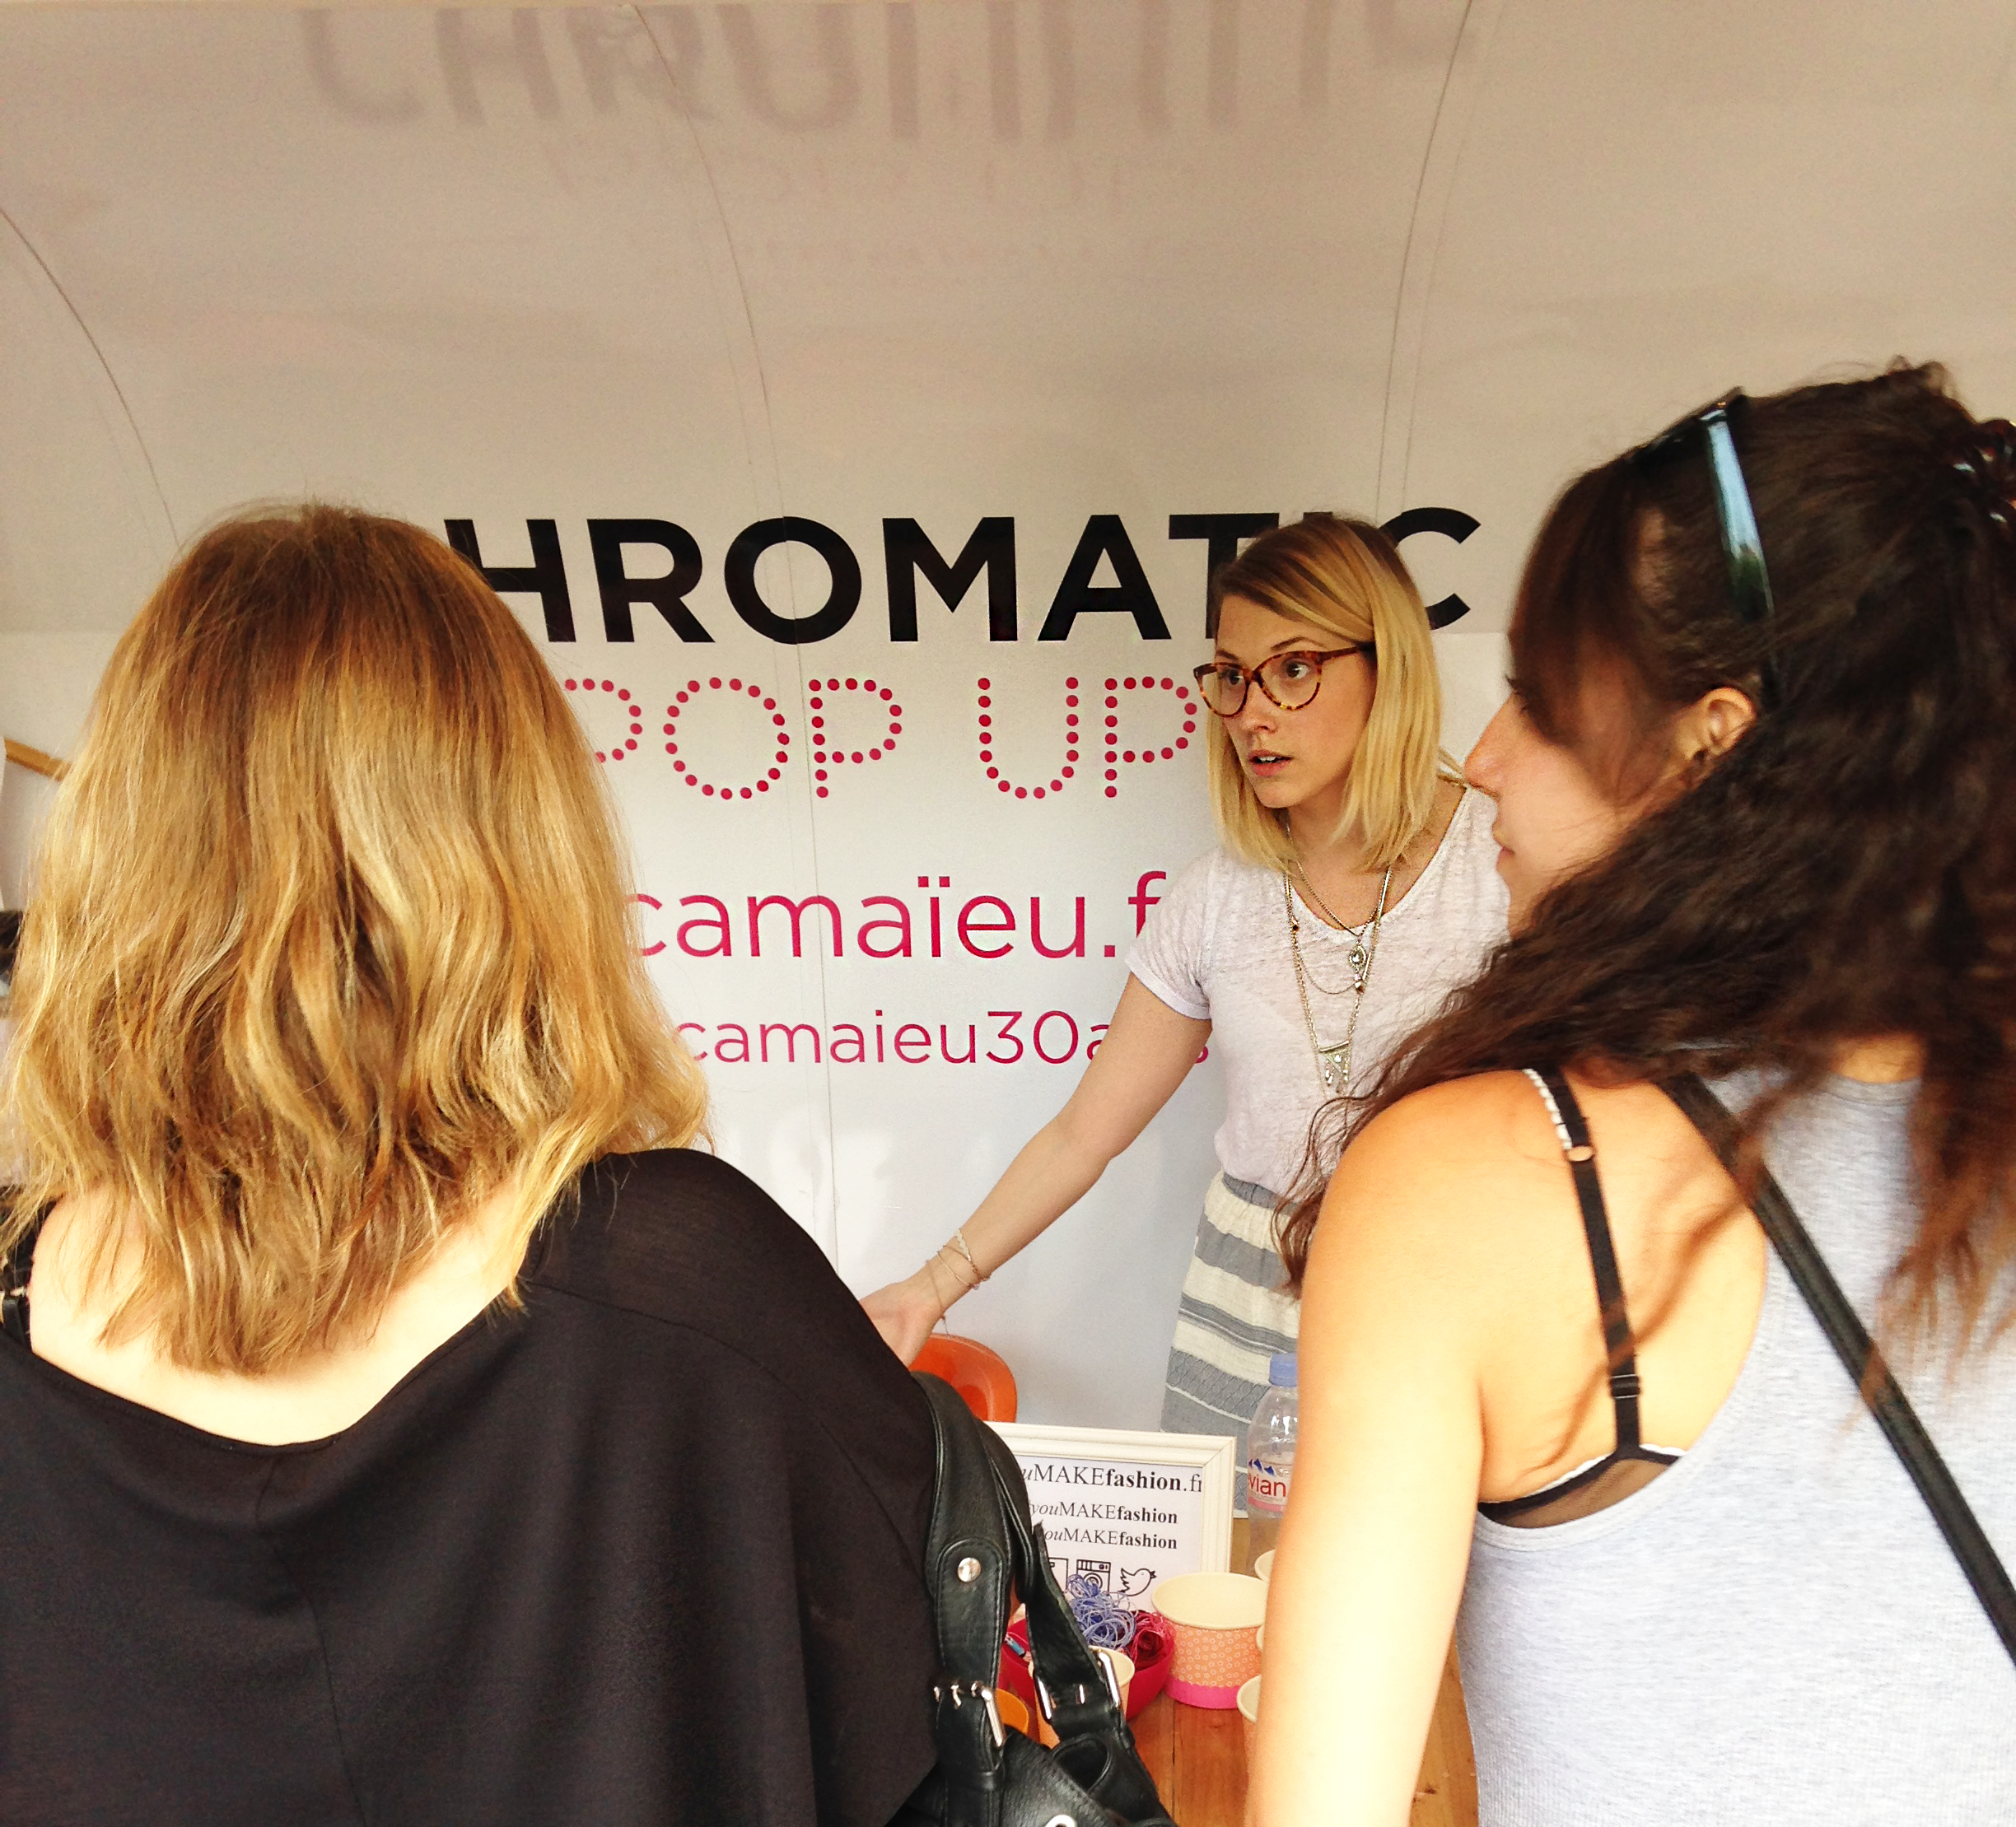 tournée-diy-youmakefashion-camaieu